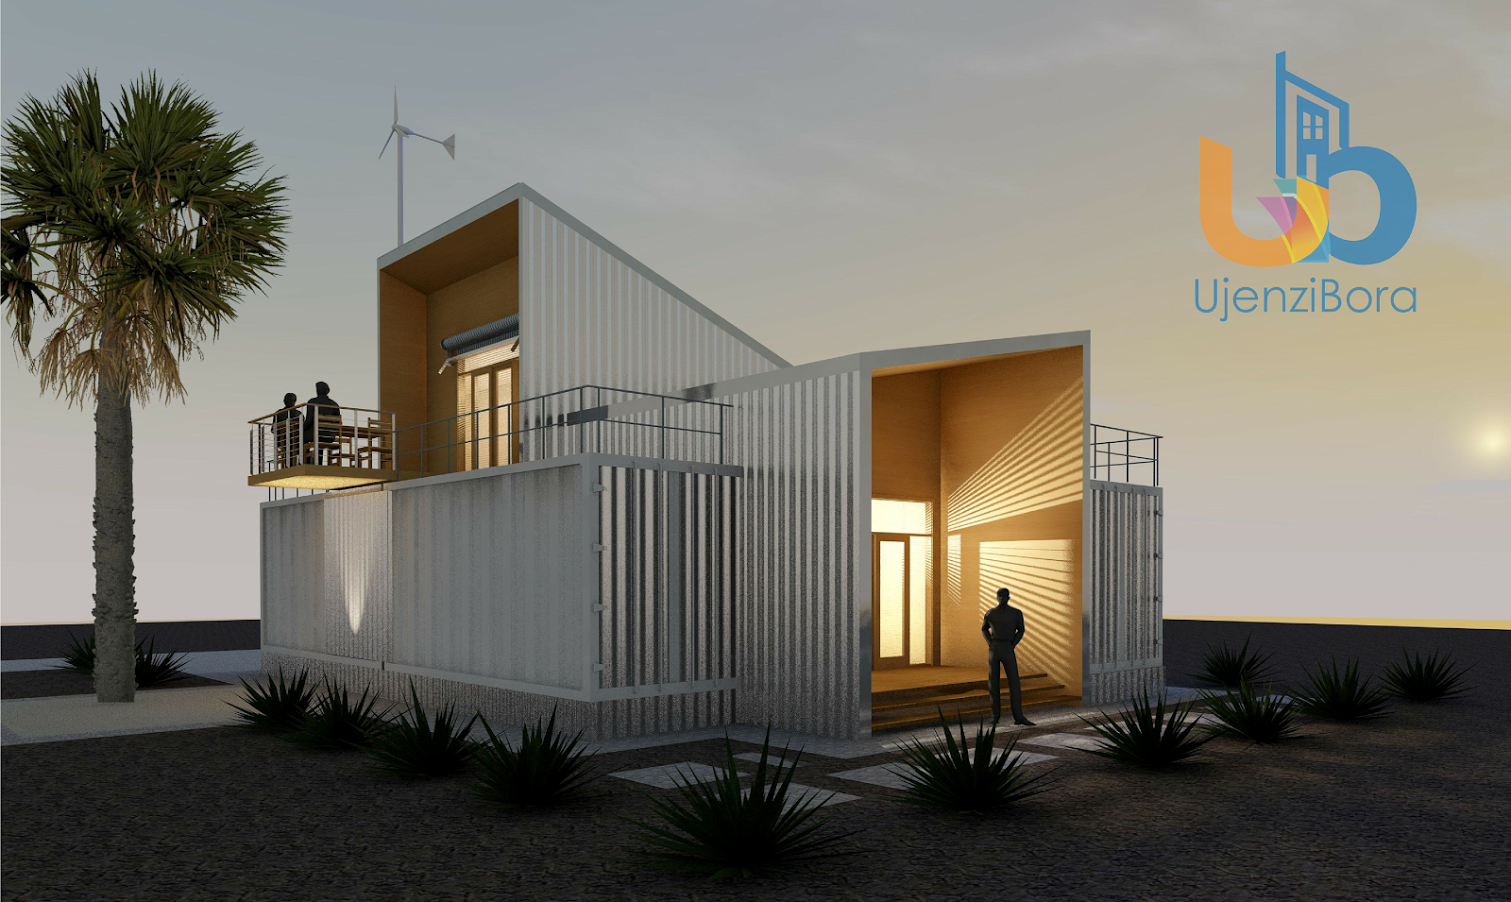 4 Bedroom Shipping Container House [140 Square Metres]UJENZIBORA on international house designs, container living designs, container house plans designs, off the grid house designs, cheap house designs, shipping warehouse designs, storage container designs, prison cell house designs, envelope house designs, metal container house designs, 2015 house designs, wood house designs, freight container home designs, mcpe house designs, eco house designs, container housing designs, construction house designs, container cabin designs, house house designs, modern house designs,